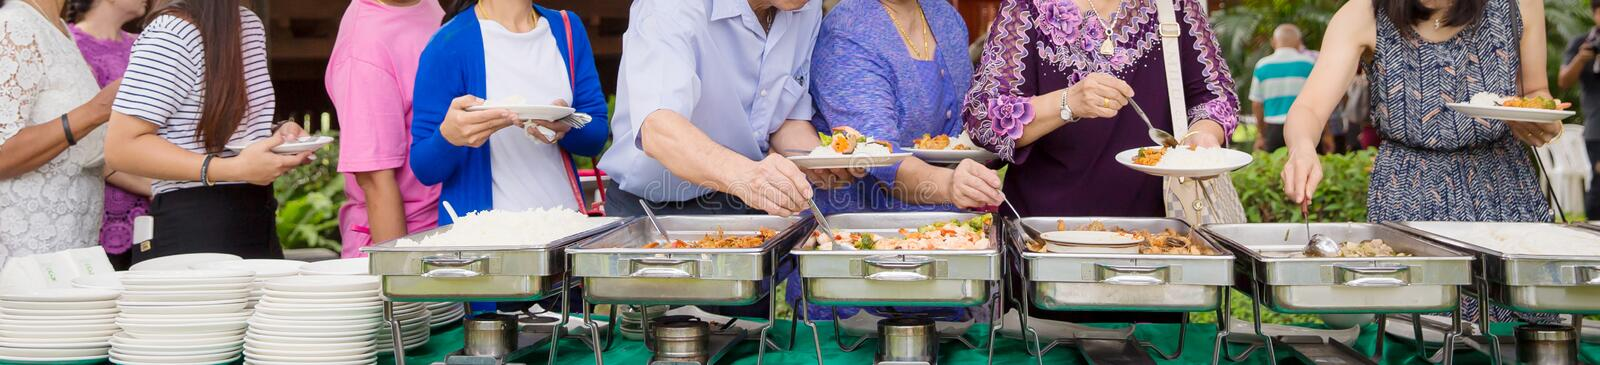 Food Buffet Catering Dining Eating Party Sharing Concept. stock image